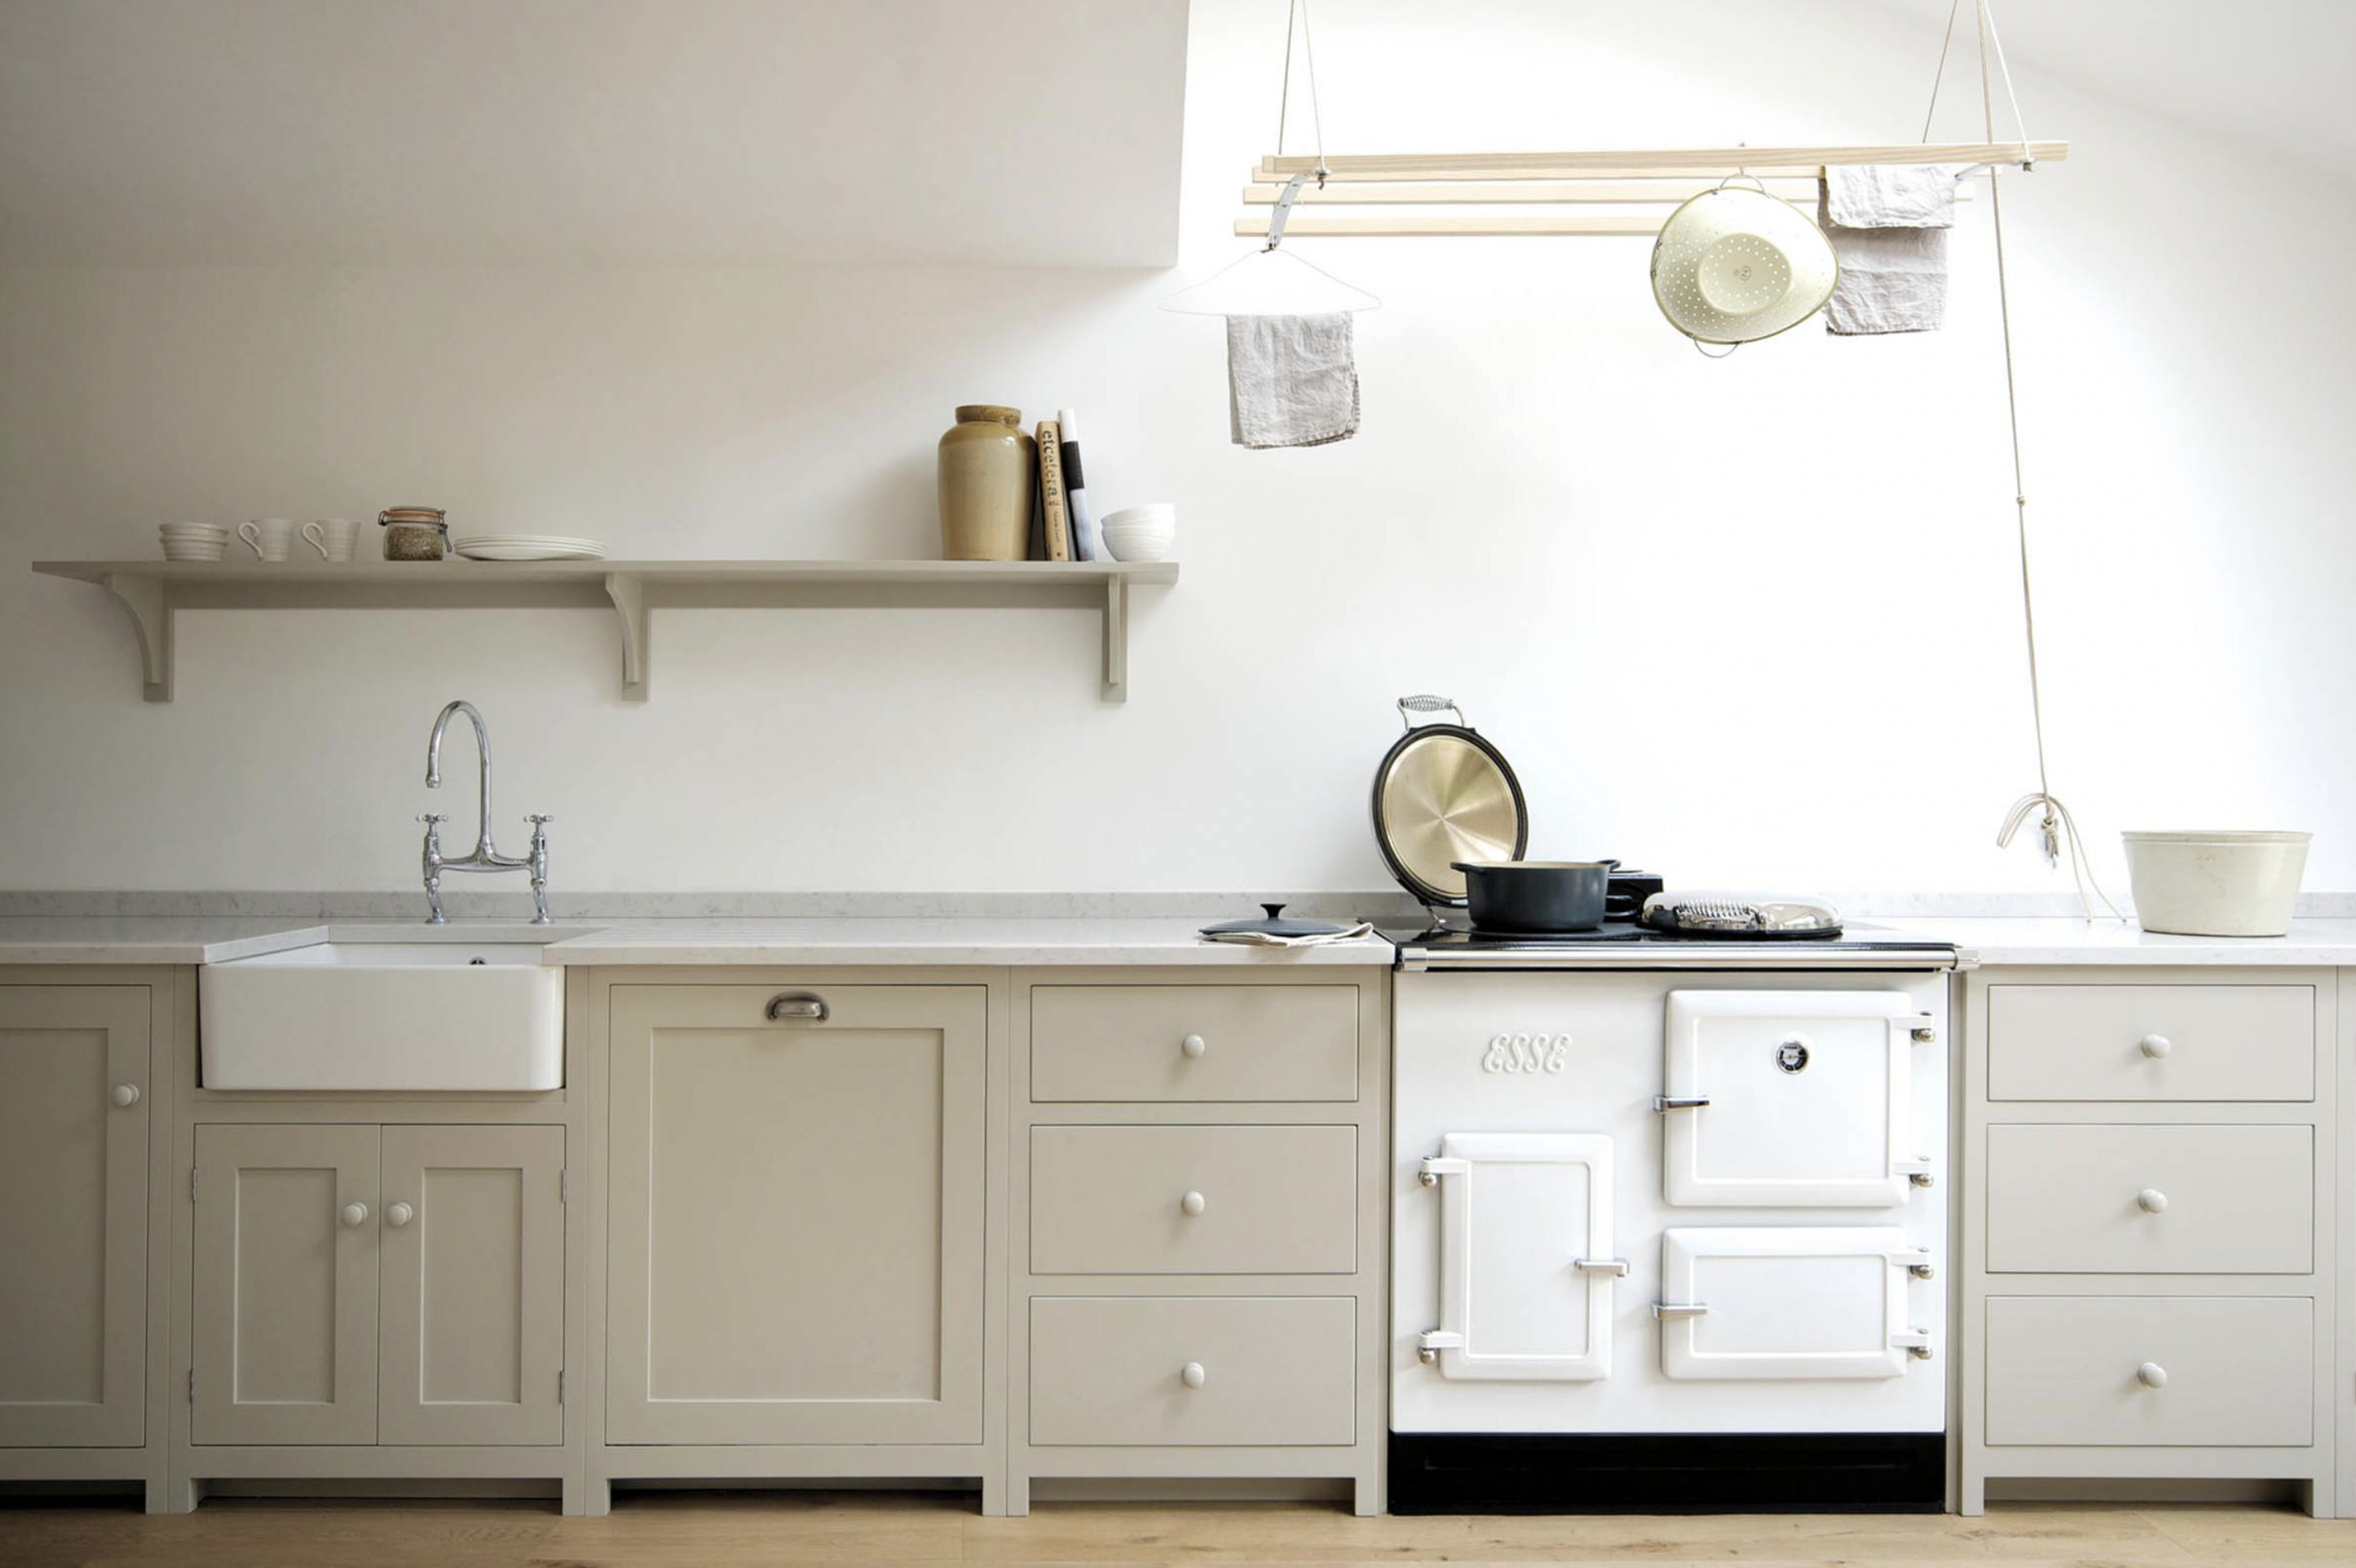 The Best Mushroom Paint Colors For Your Kitchen The Identite Collective In 2020 Devol Kitchens Taupe Kitchen Cabinets Taupe Kitchen